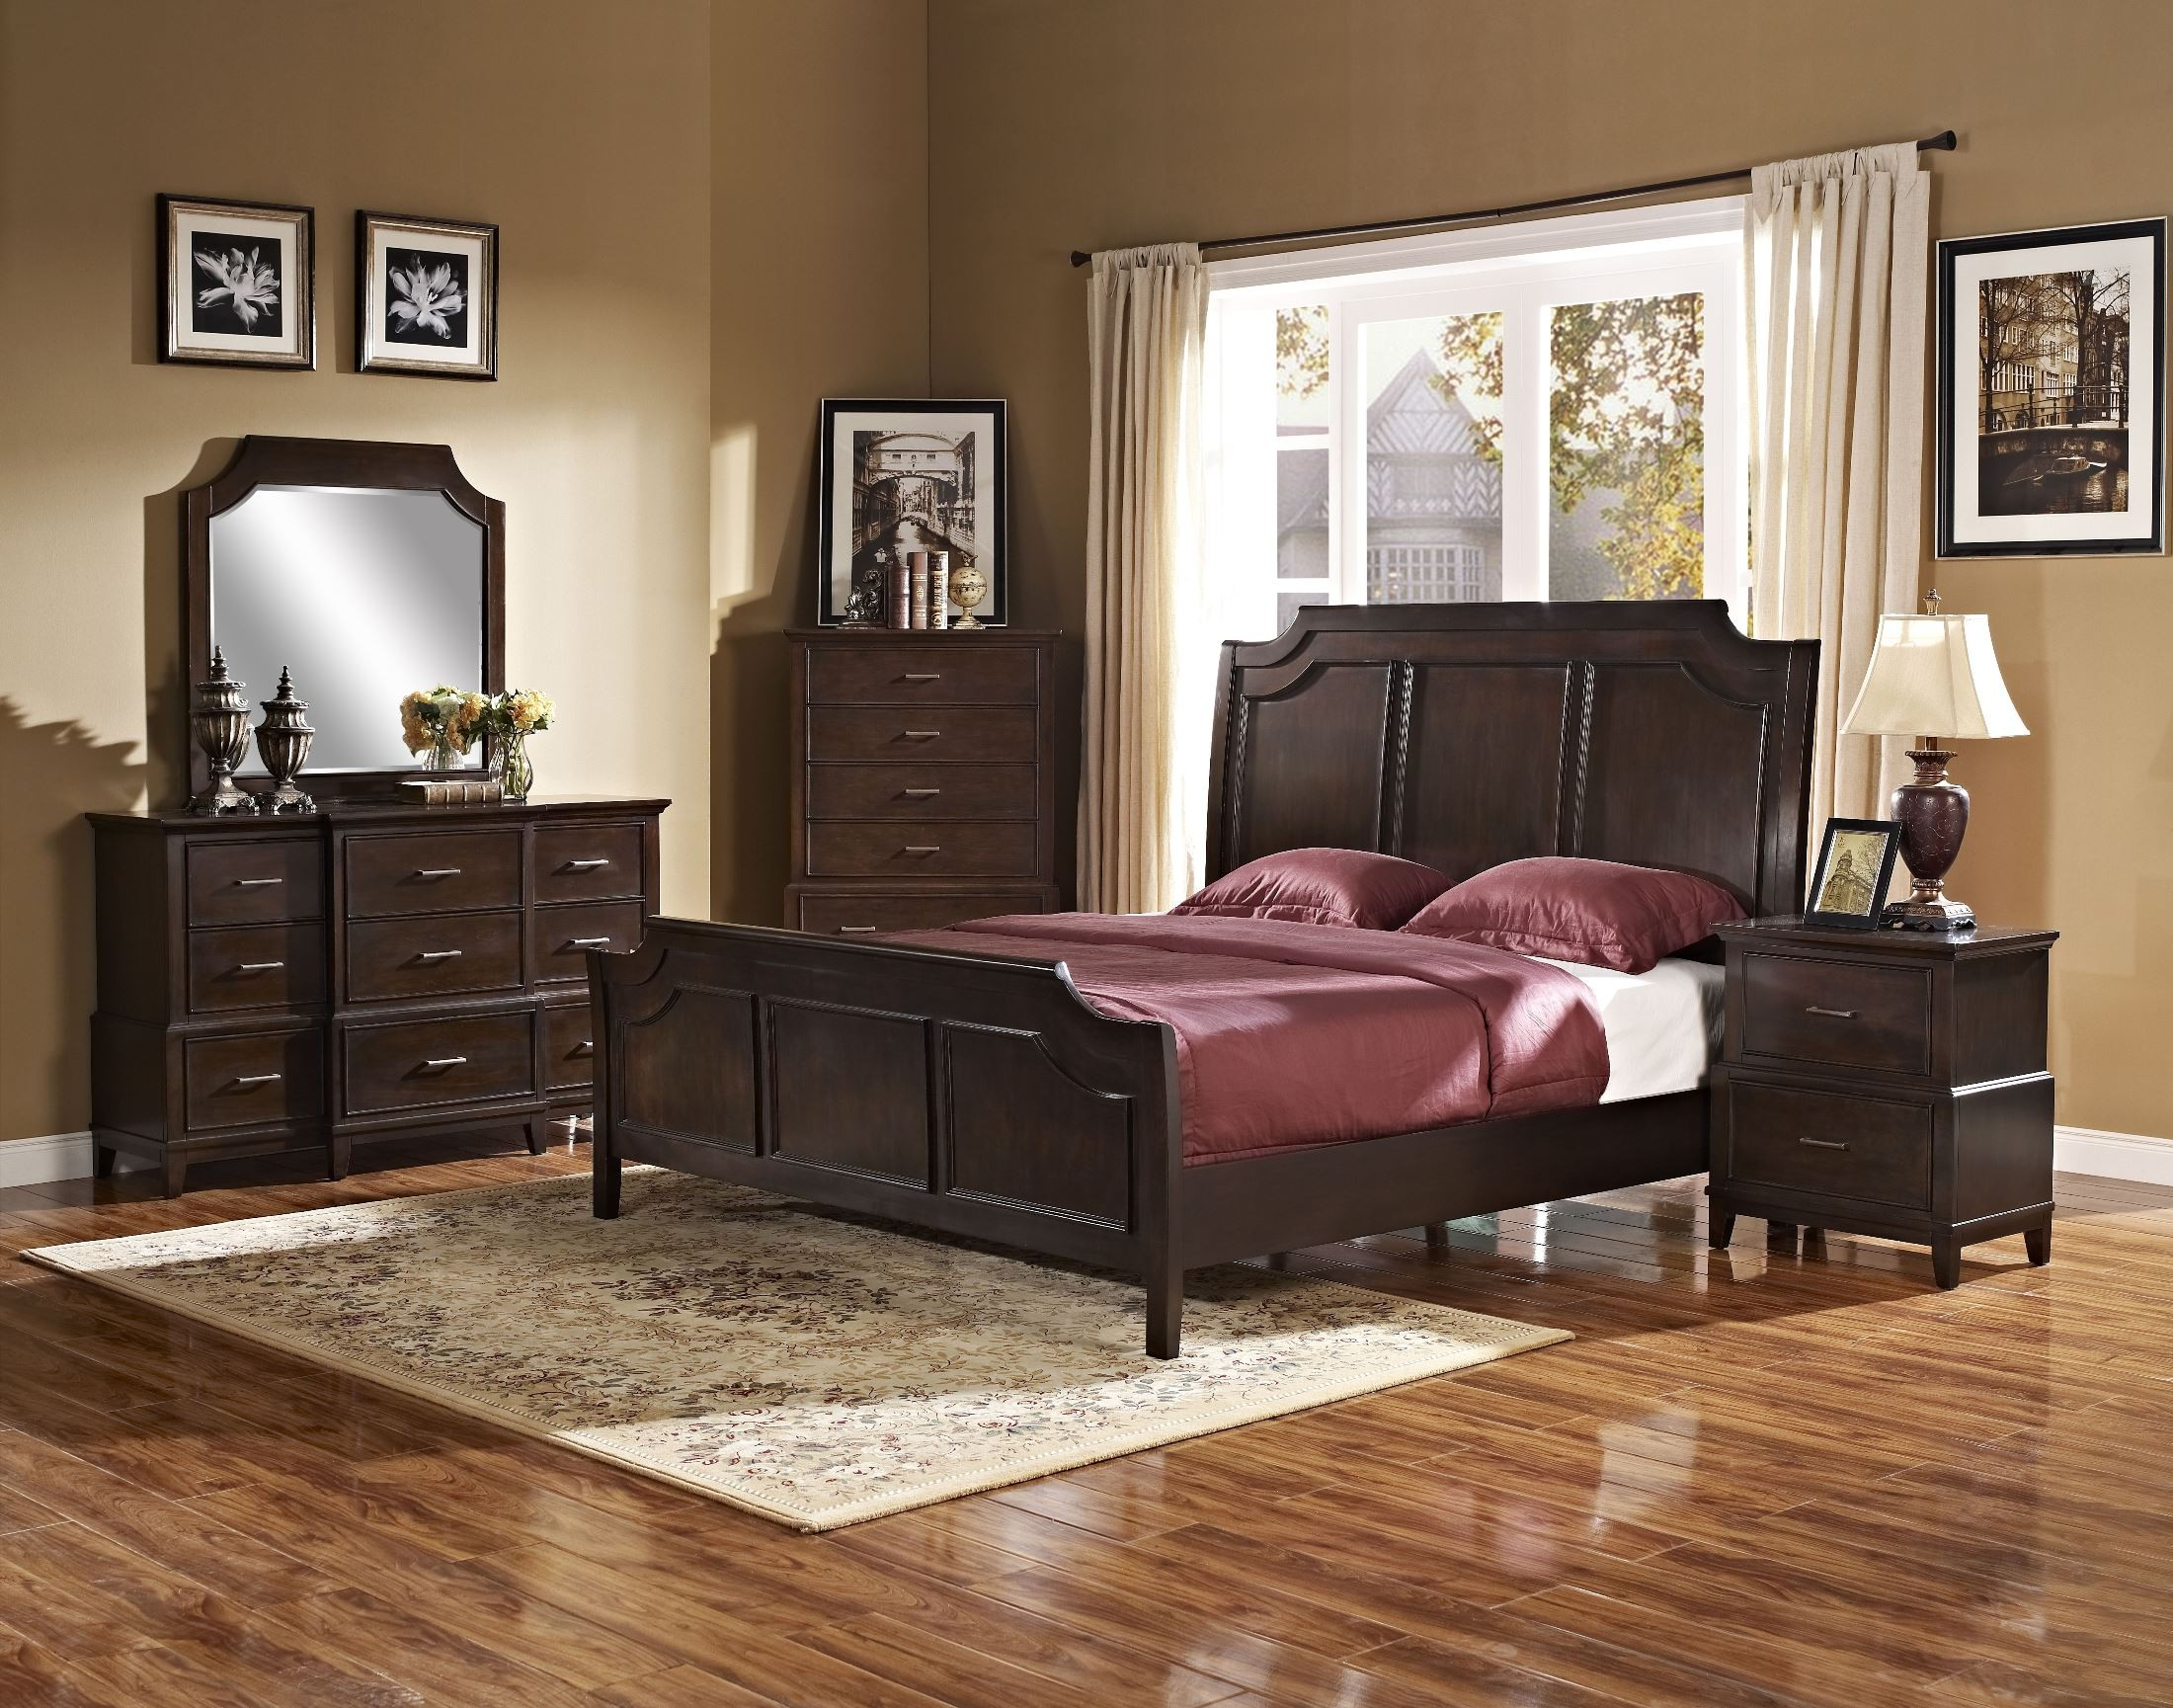 Highland Park Distressed Walnut Panel Bedroom Set From New Classics 00 128 310 320 330